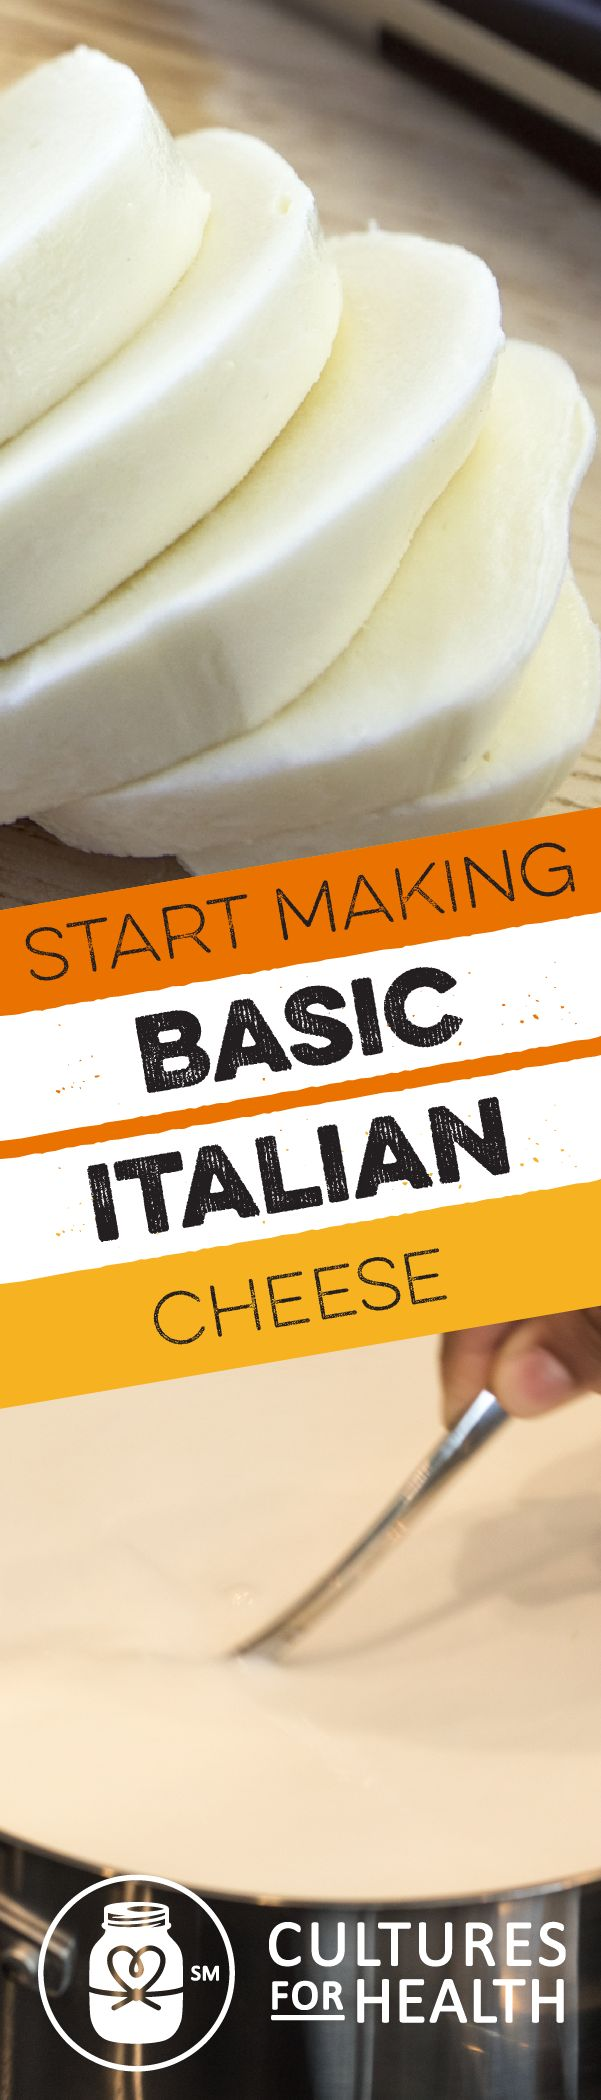 Create a tasty DIY snack, make an unforgettable dessert, or upgrade your family's lasagna recipe with this Basic Italian Cheese Making Kit. This kit contains everything you need to make cheese in under an hour; just add milk. Start your cheese making adventure with a delicious introduction that will get you hungry for making more advanced Italian cheeses.